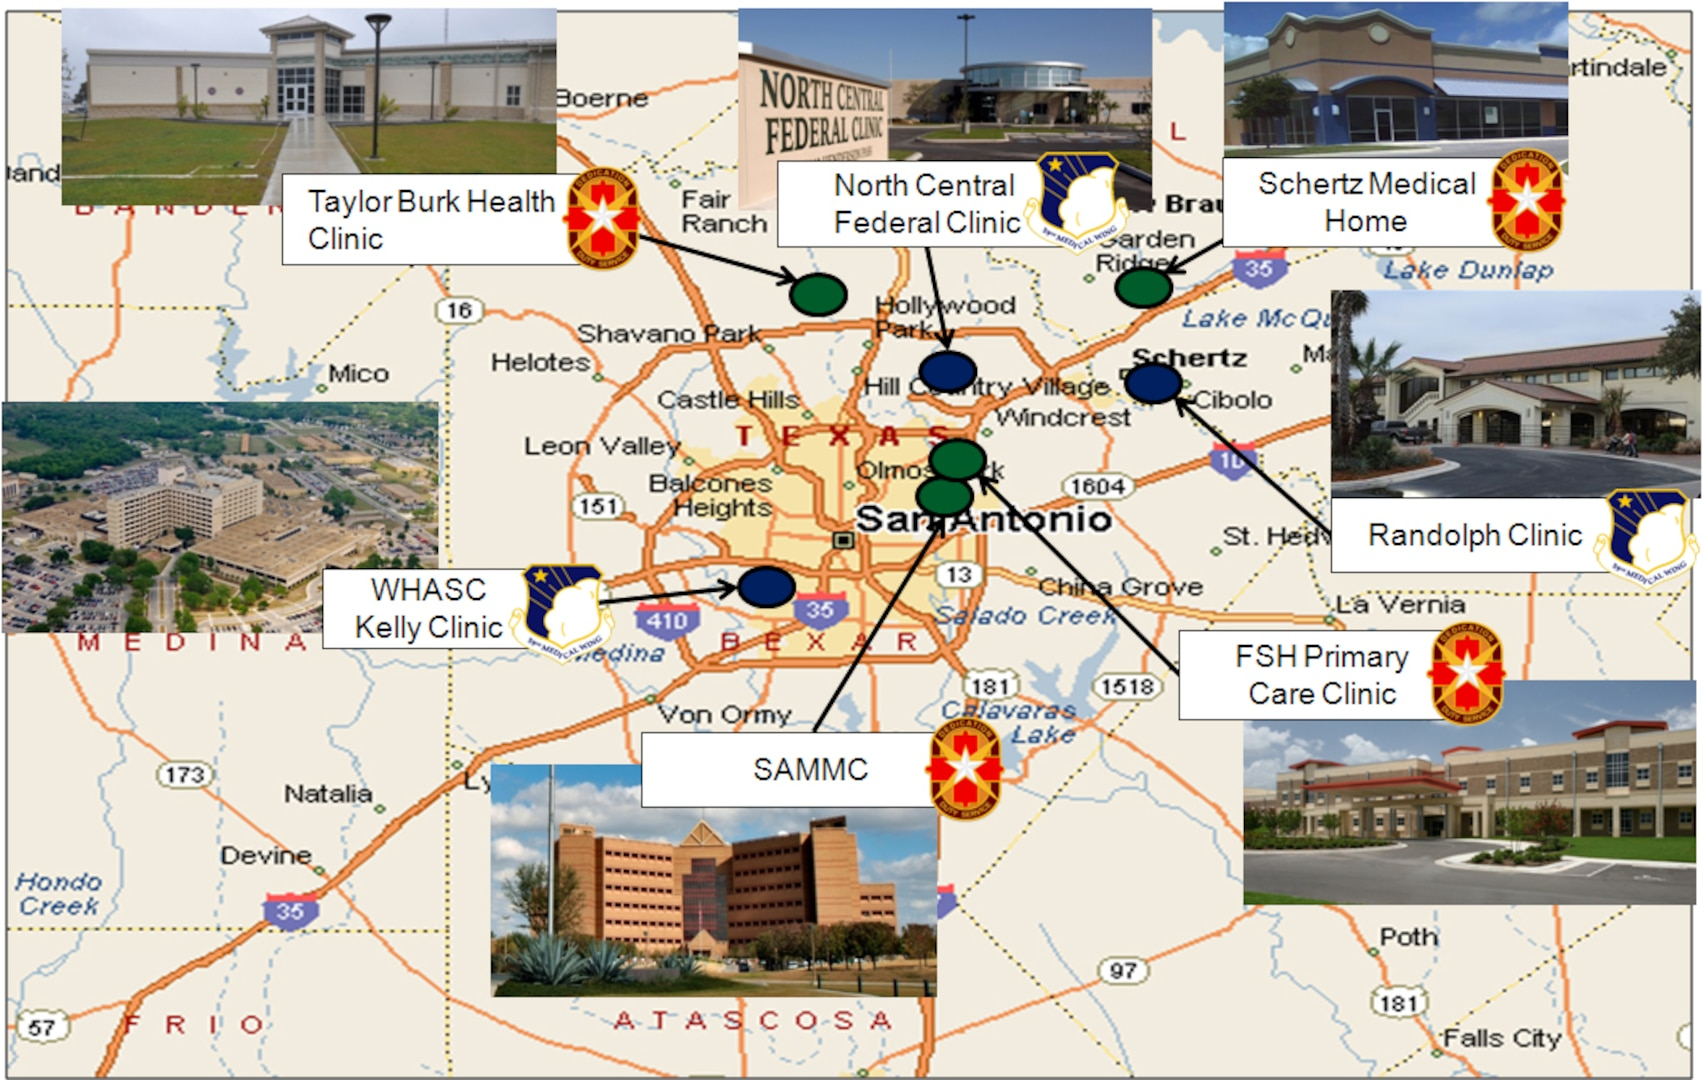 The San Antonio Military Health System provides oversight of all military health services within the San Antonio area. SAMHS includes over 9,000 healthcare workers in 10 facilities, supporting over 230,000 beneficiaries, and providing over 100 specialty services with over a $1 billion economic impact to the San Antonio community. (U.S. Air Force illustration)